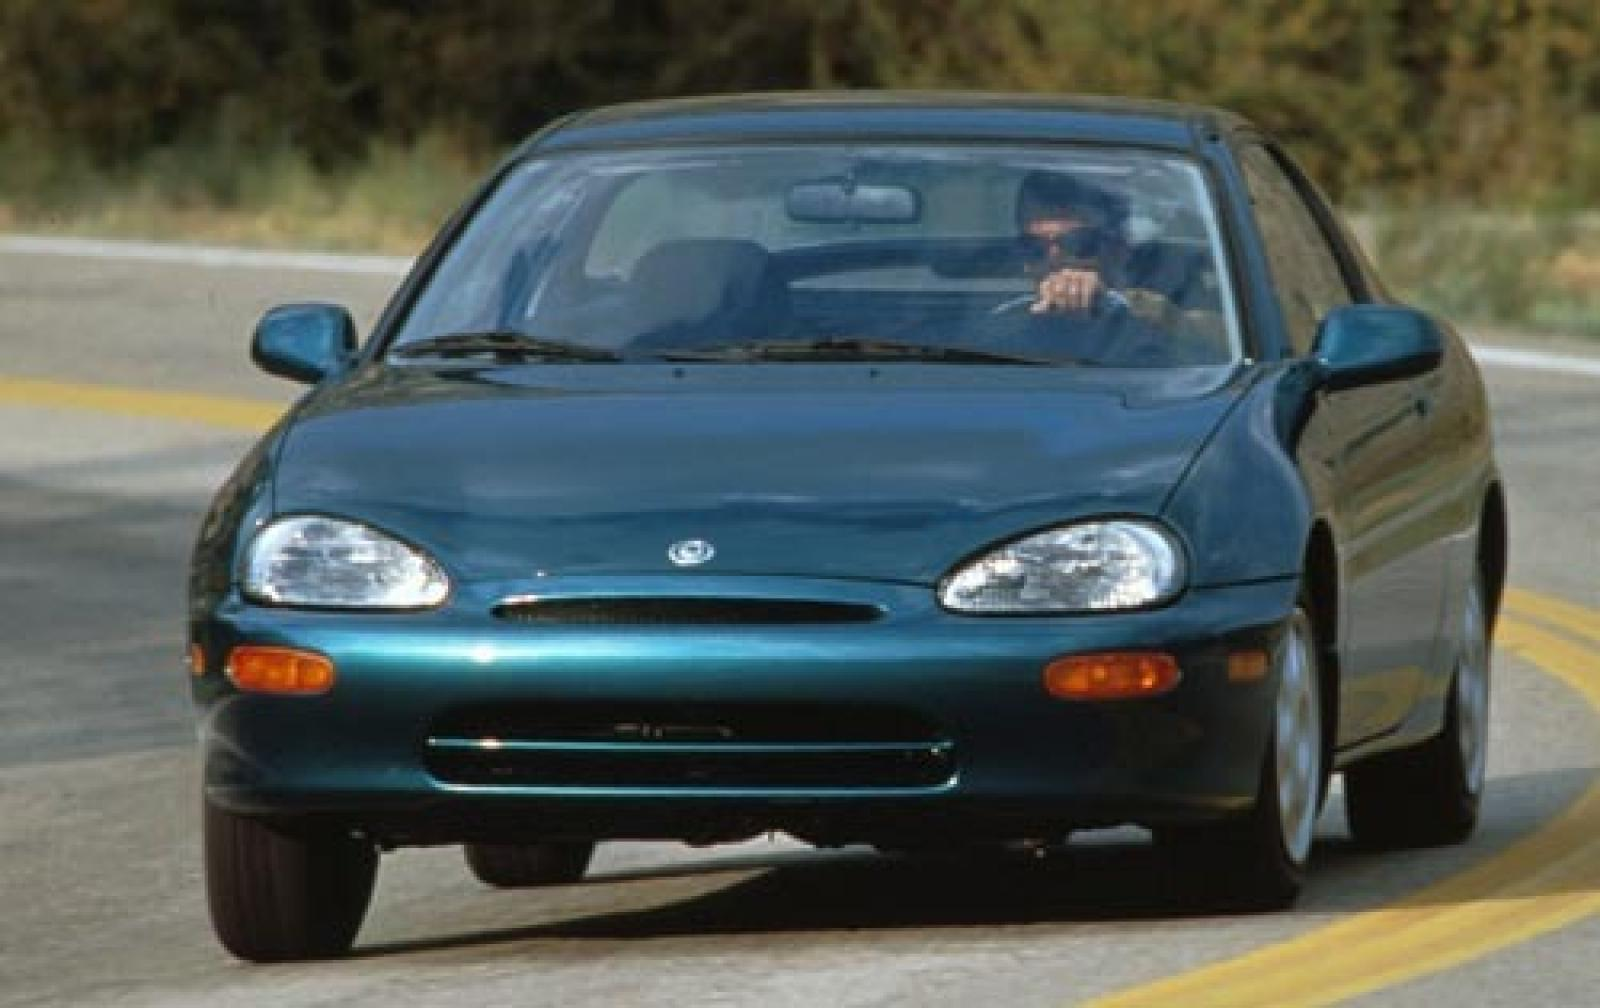 1995 mazda mx 3 information and photos zombiedrive. Black Bedroom Furniture Sets. Home Design Ideas